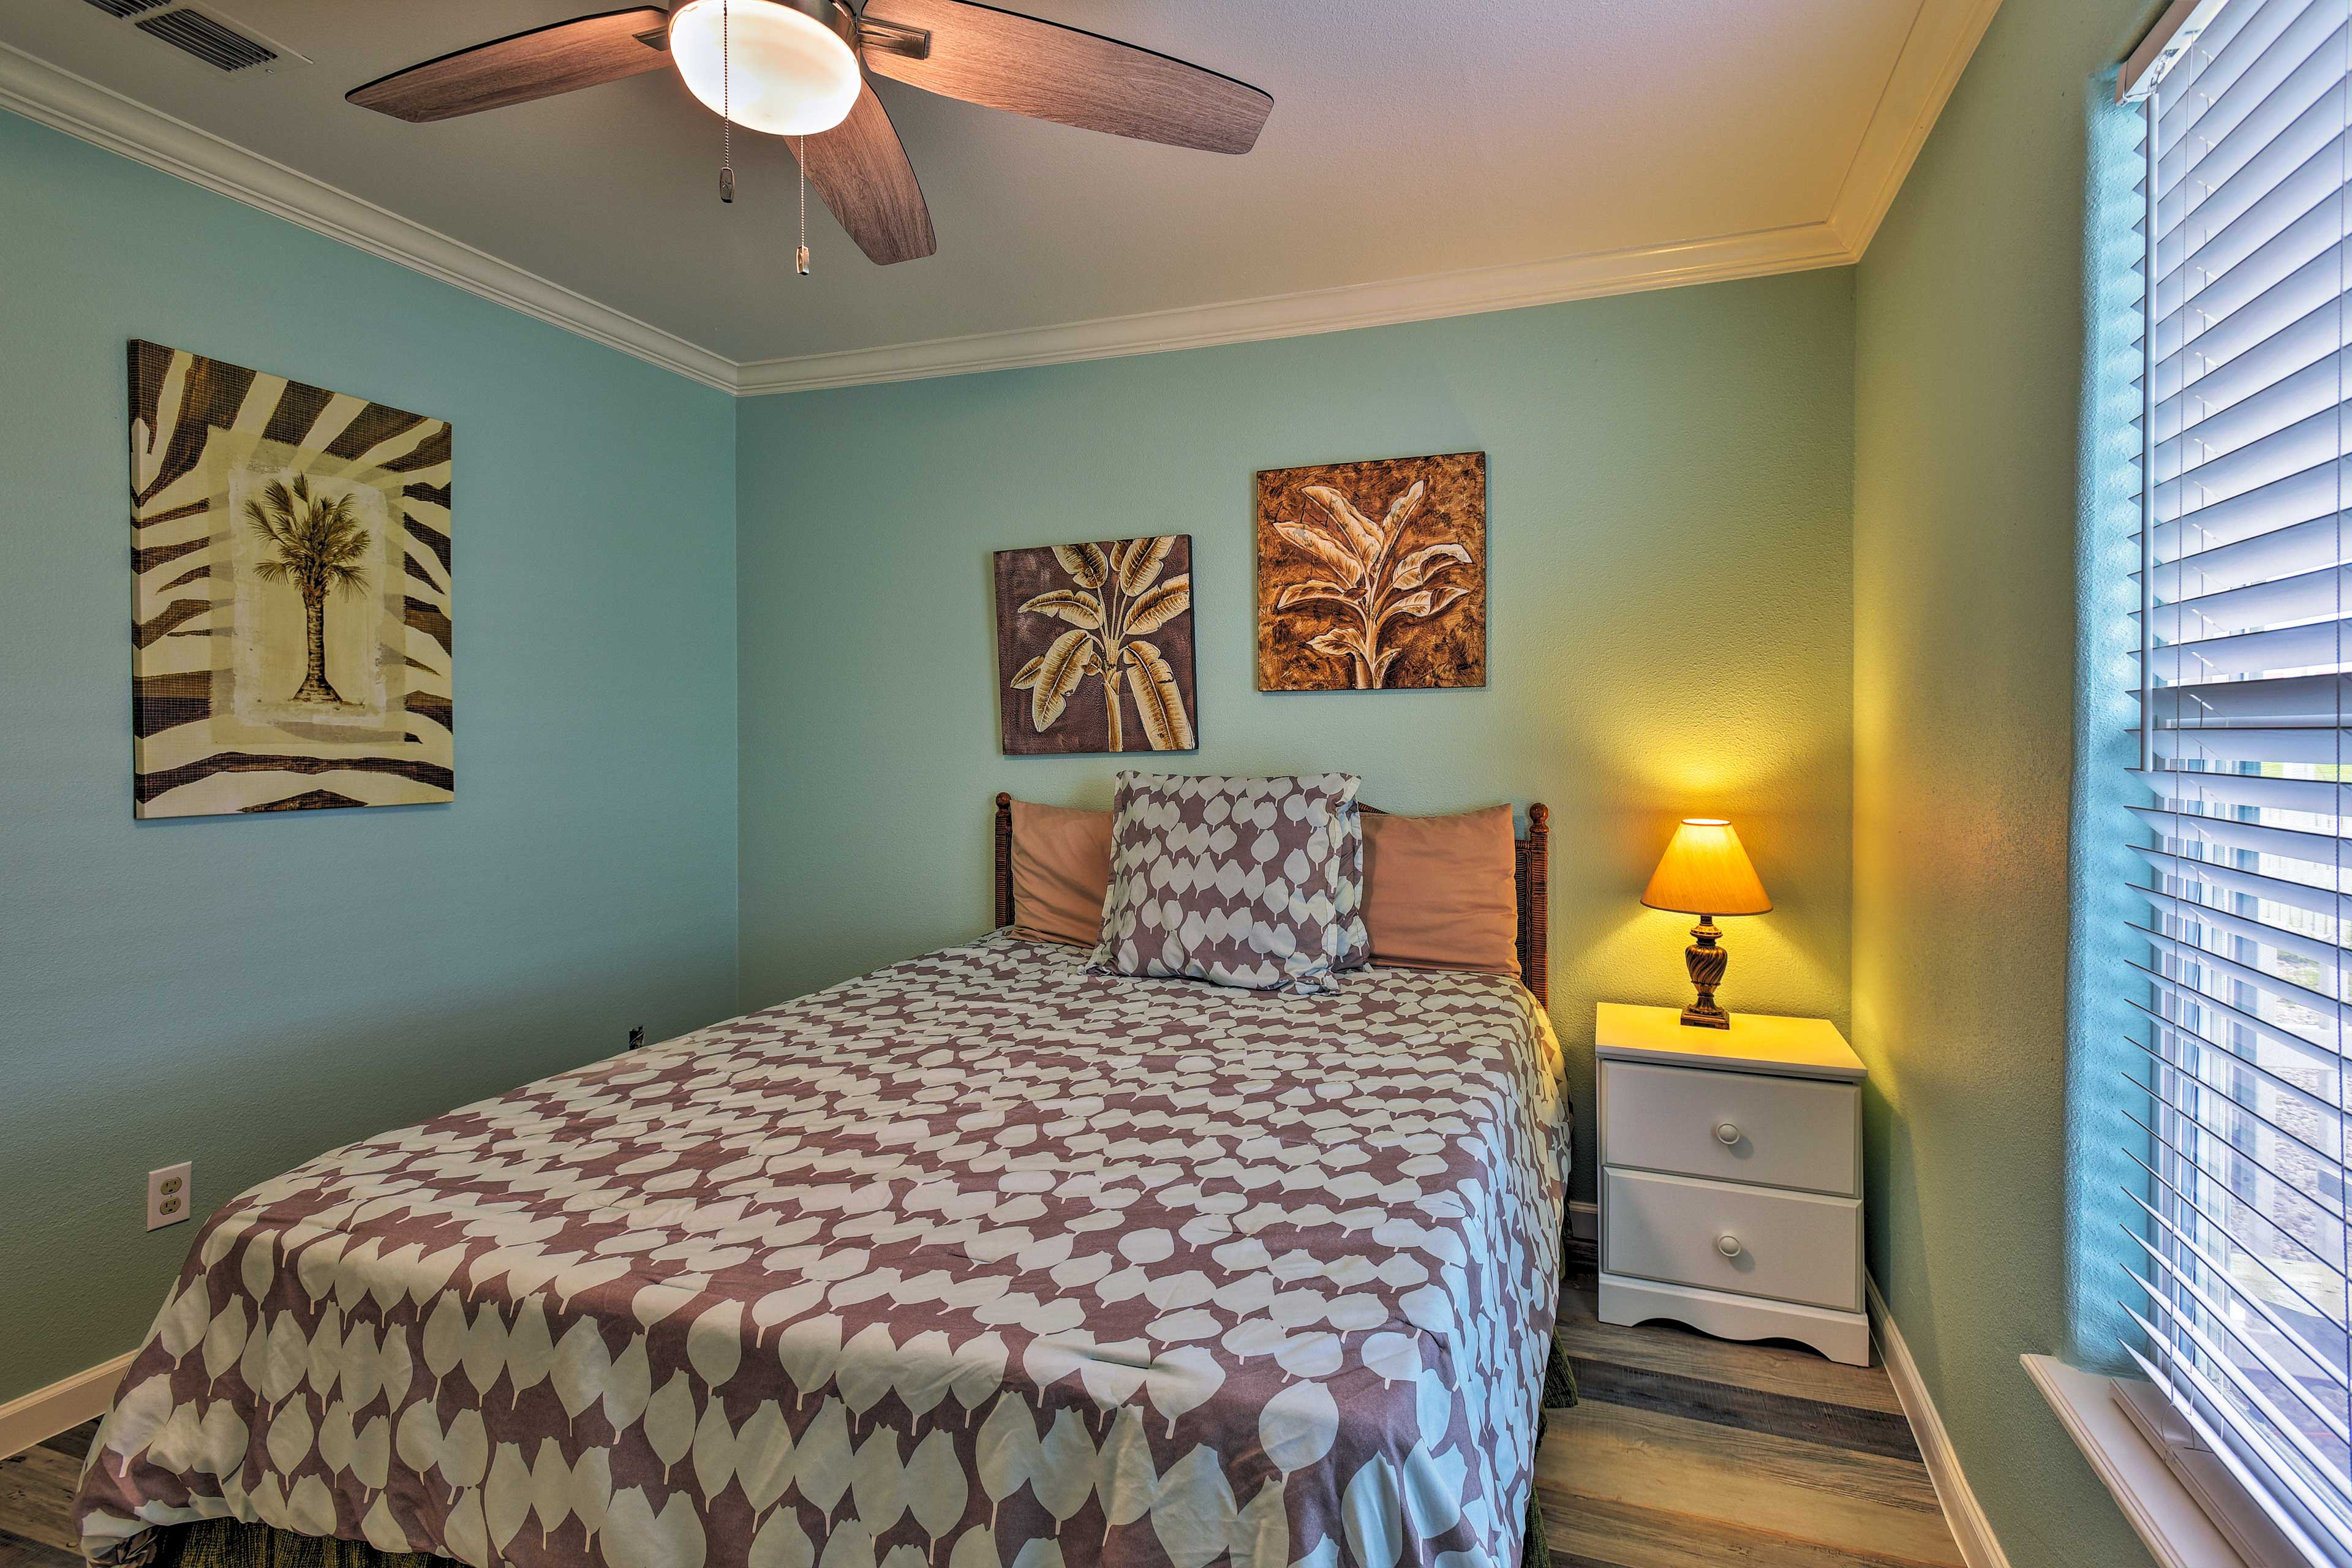 Keep the room extra cool with use of the fan.